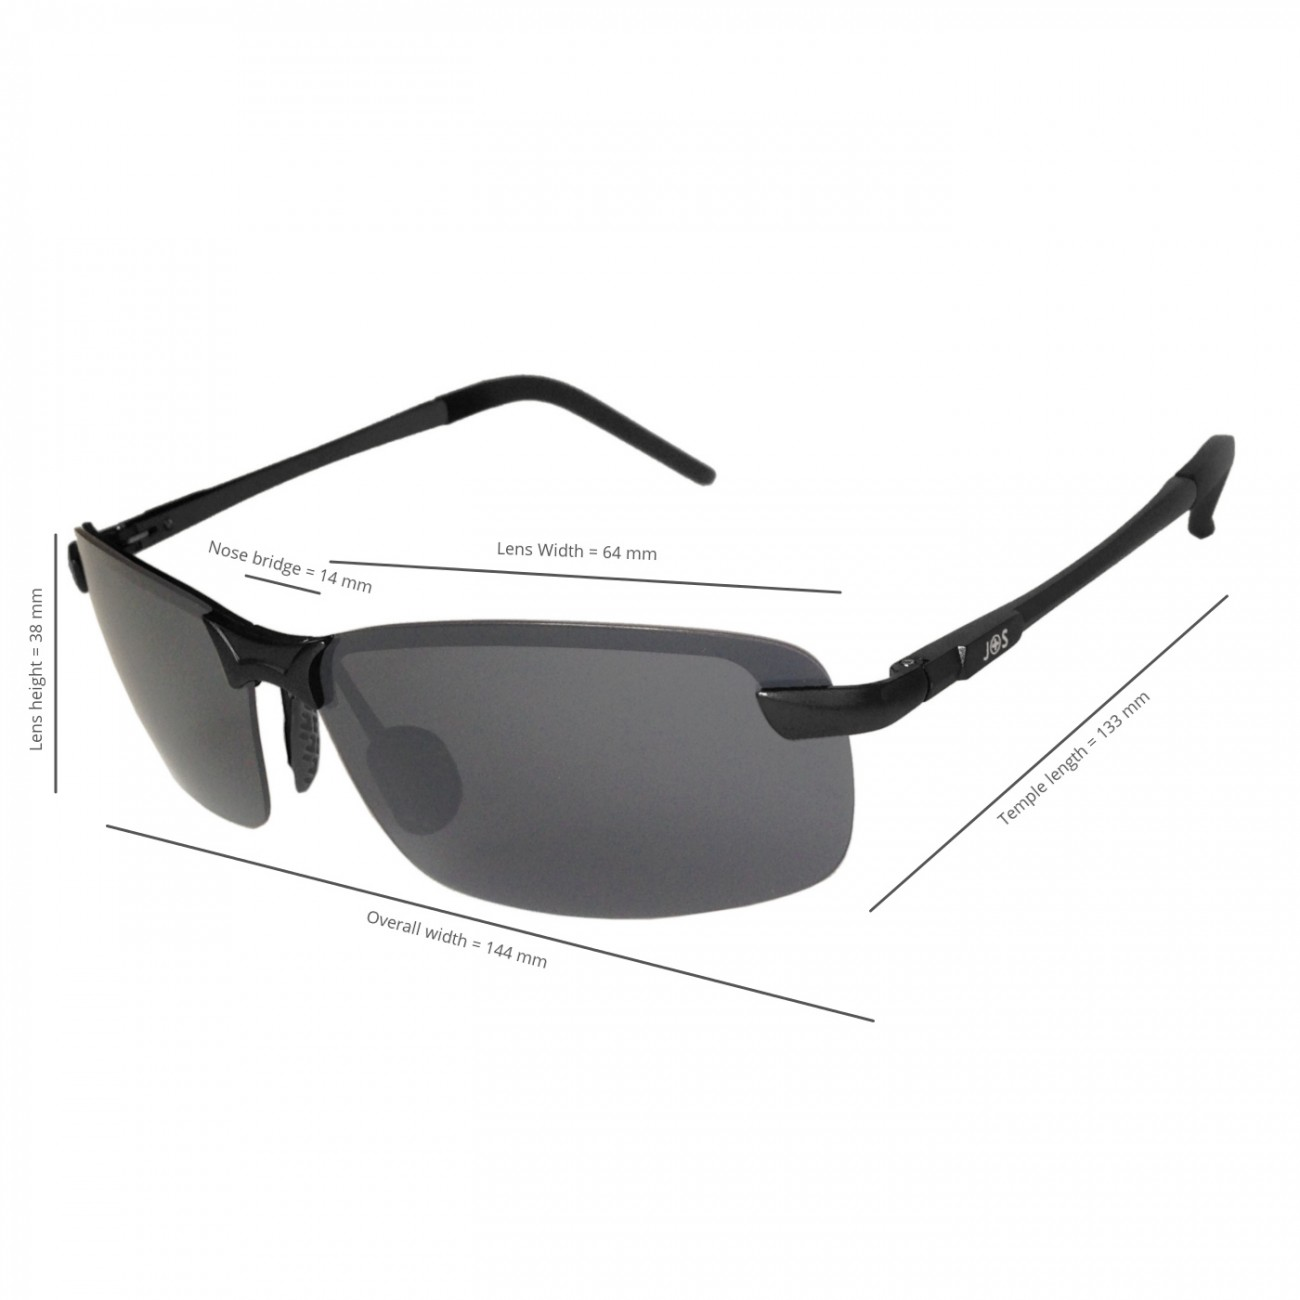 Sunglasses With Nose Protection  j s ultra lightweight men s rimless sports sunglasses polarized